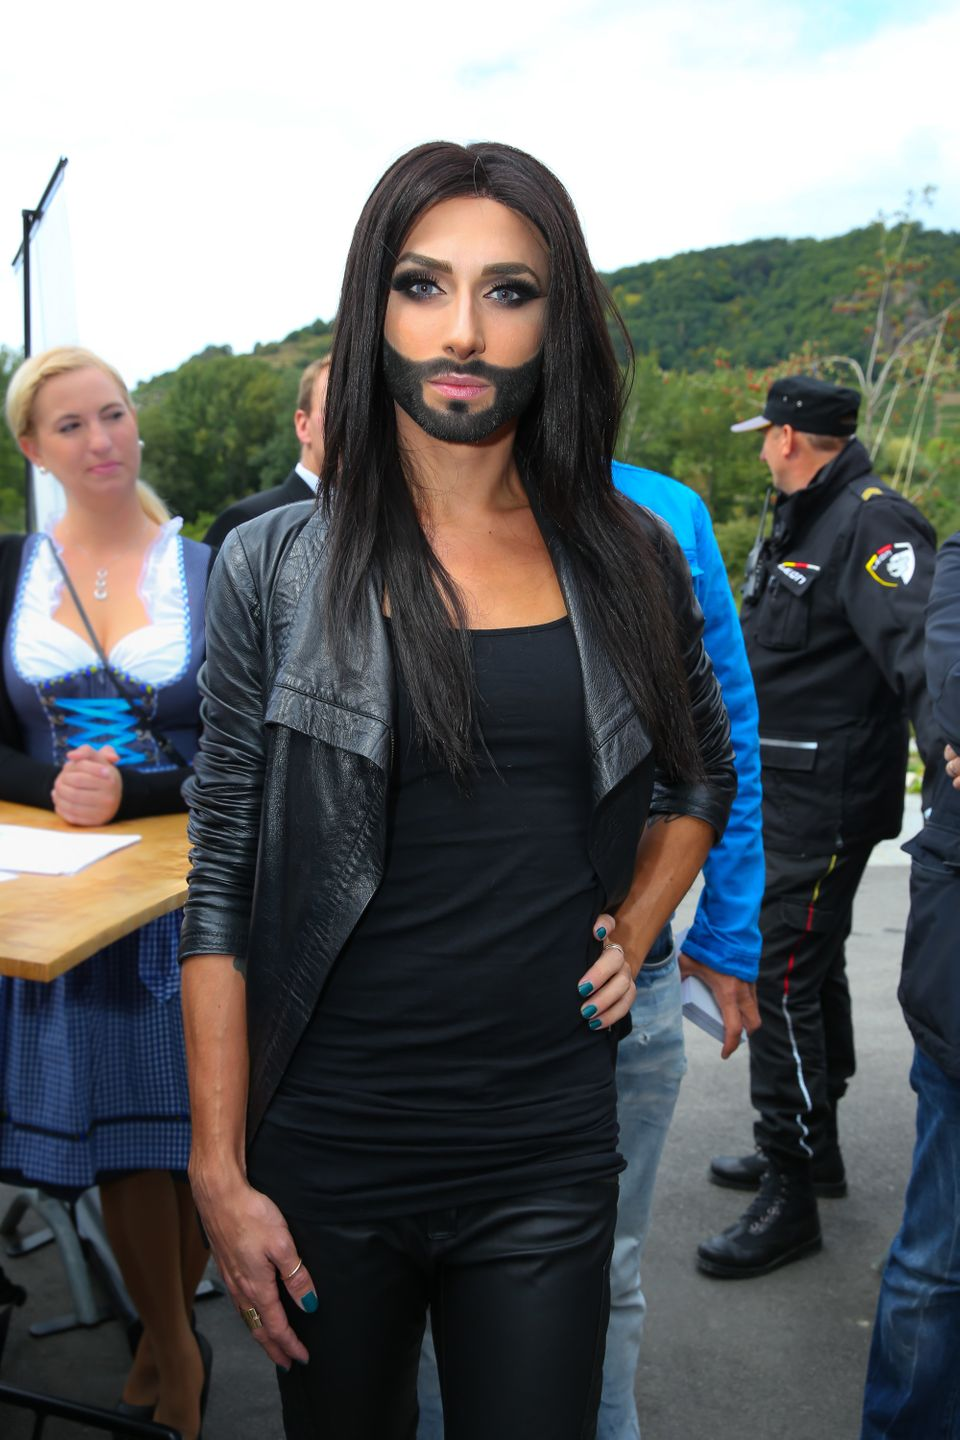 ROSSATZ, AUSTRIA - SEPTEMBER 21: Conchita Wurst attends the startalk prior the 'Starnacht aus der Wachau' at Heuriger Polz on